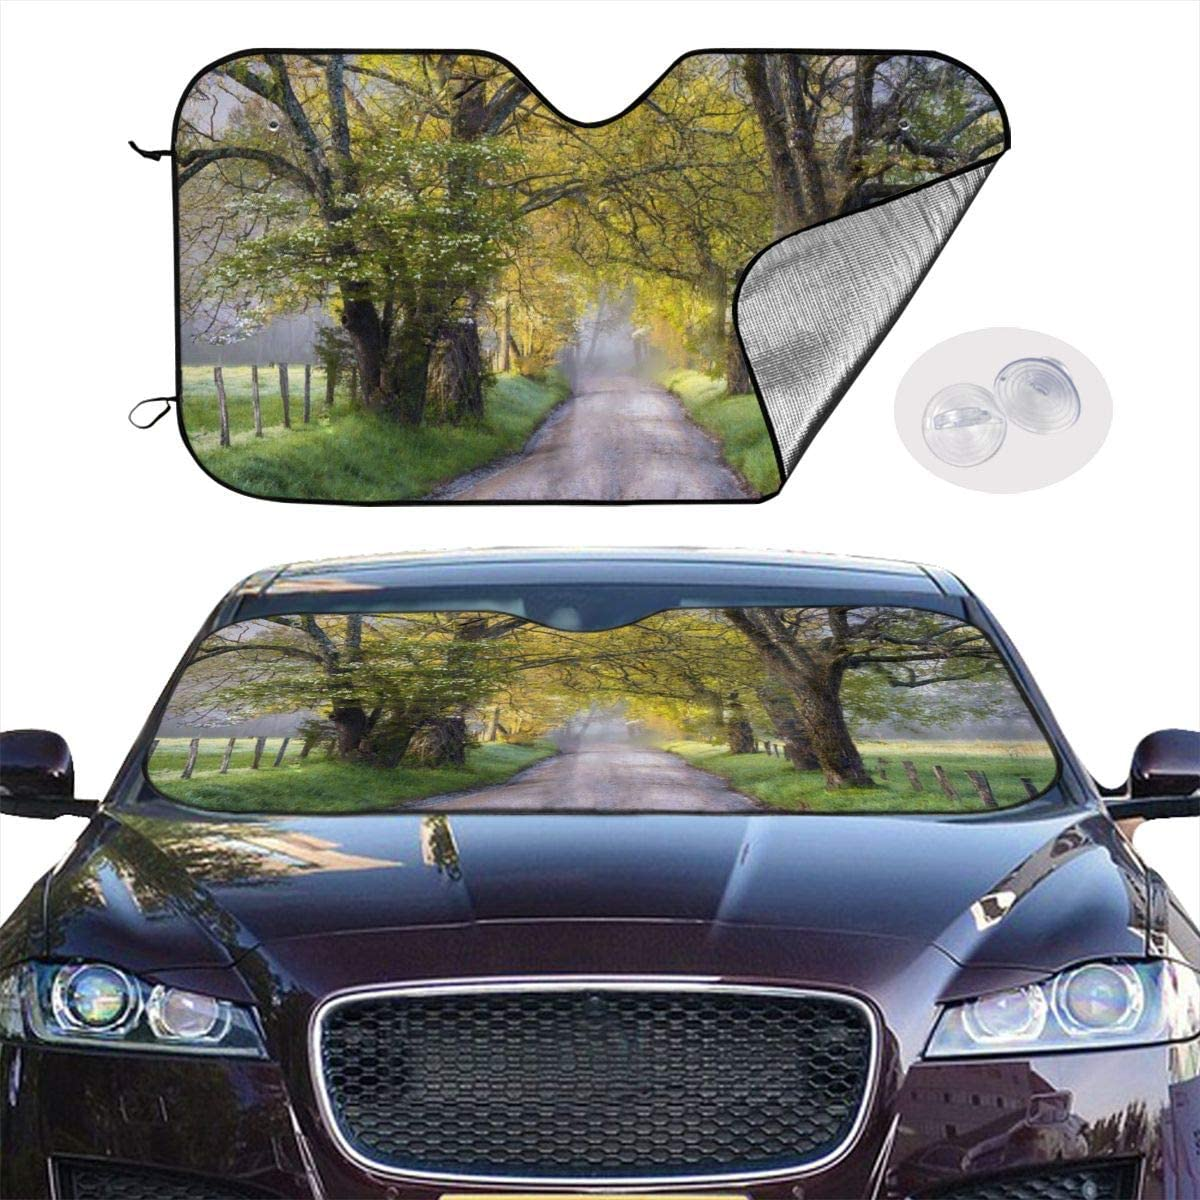 THONFIRE Car Windshield Sunshade Scenic Park Yellow Leaf Blocks Heat Keeps Your Vehicle Cool Visor Protector Automobile Front Window Heat Reflector